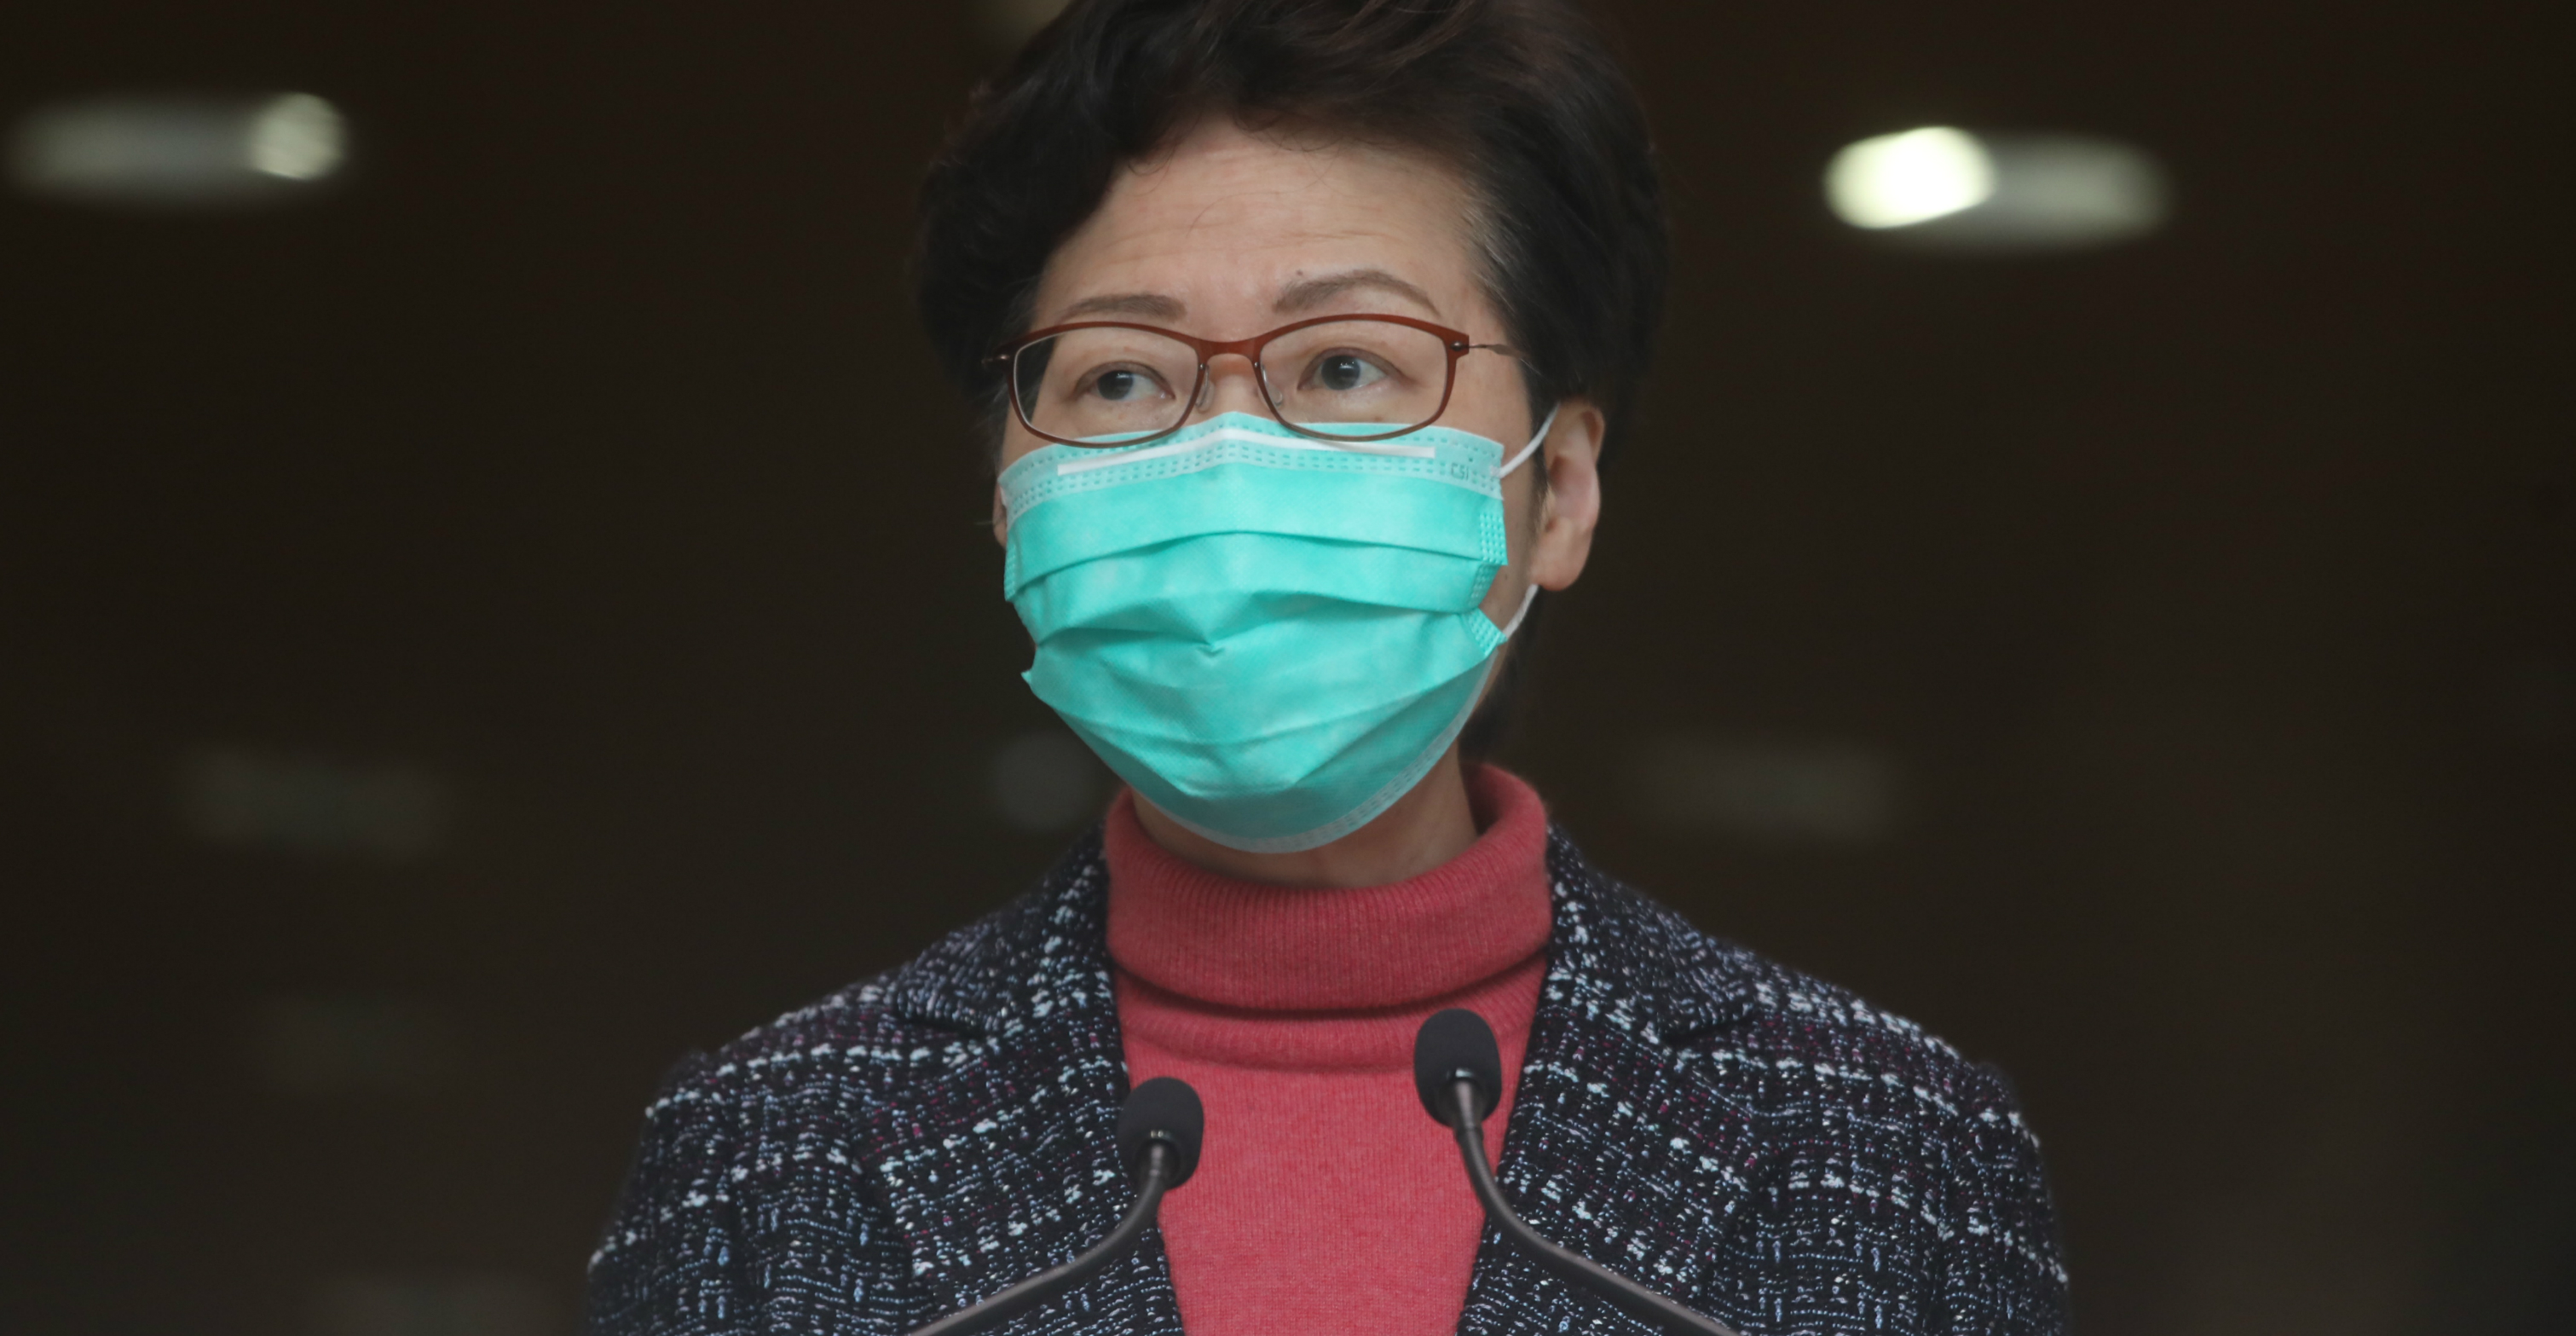 Chief Executive Carrie Lam has been silent about a viral media report alleging that she sent a secret report to her Beijing bosses complaining about her own Executive Council and establishment camp allies, says the author. Photo: HKEJ